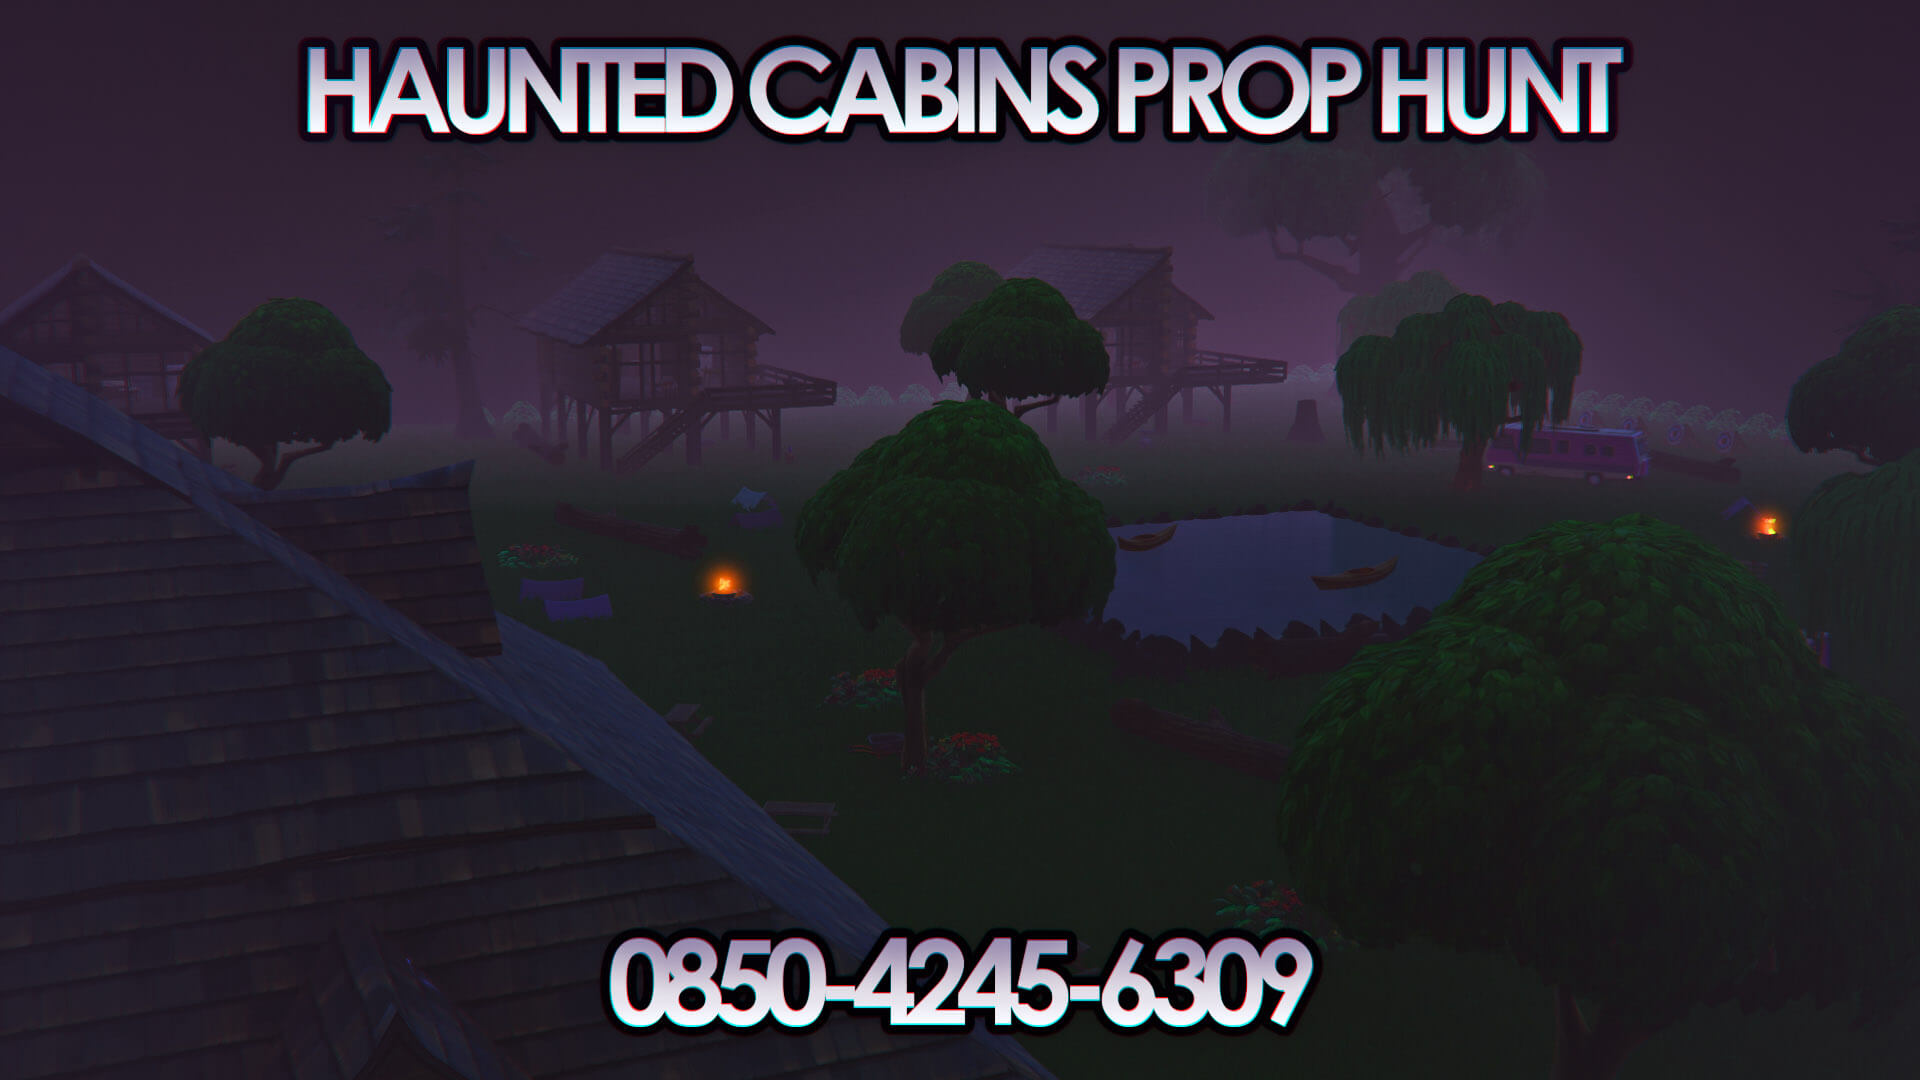 HAUNTED CABINS PROP HUNT